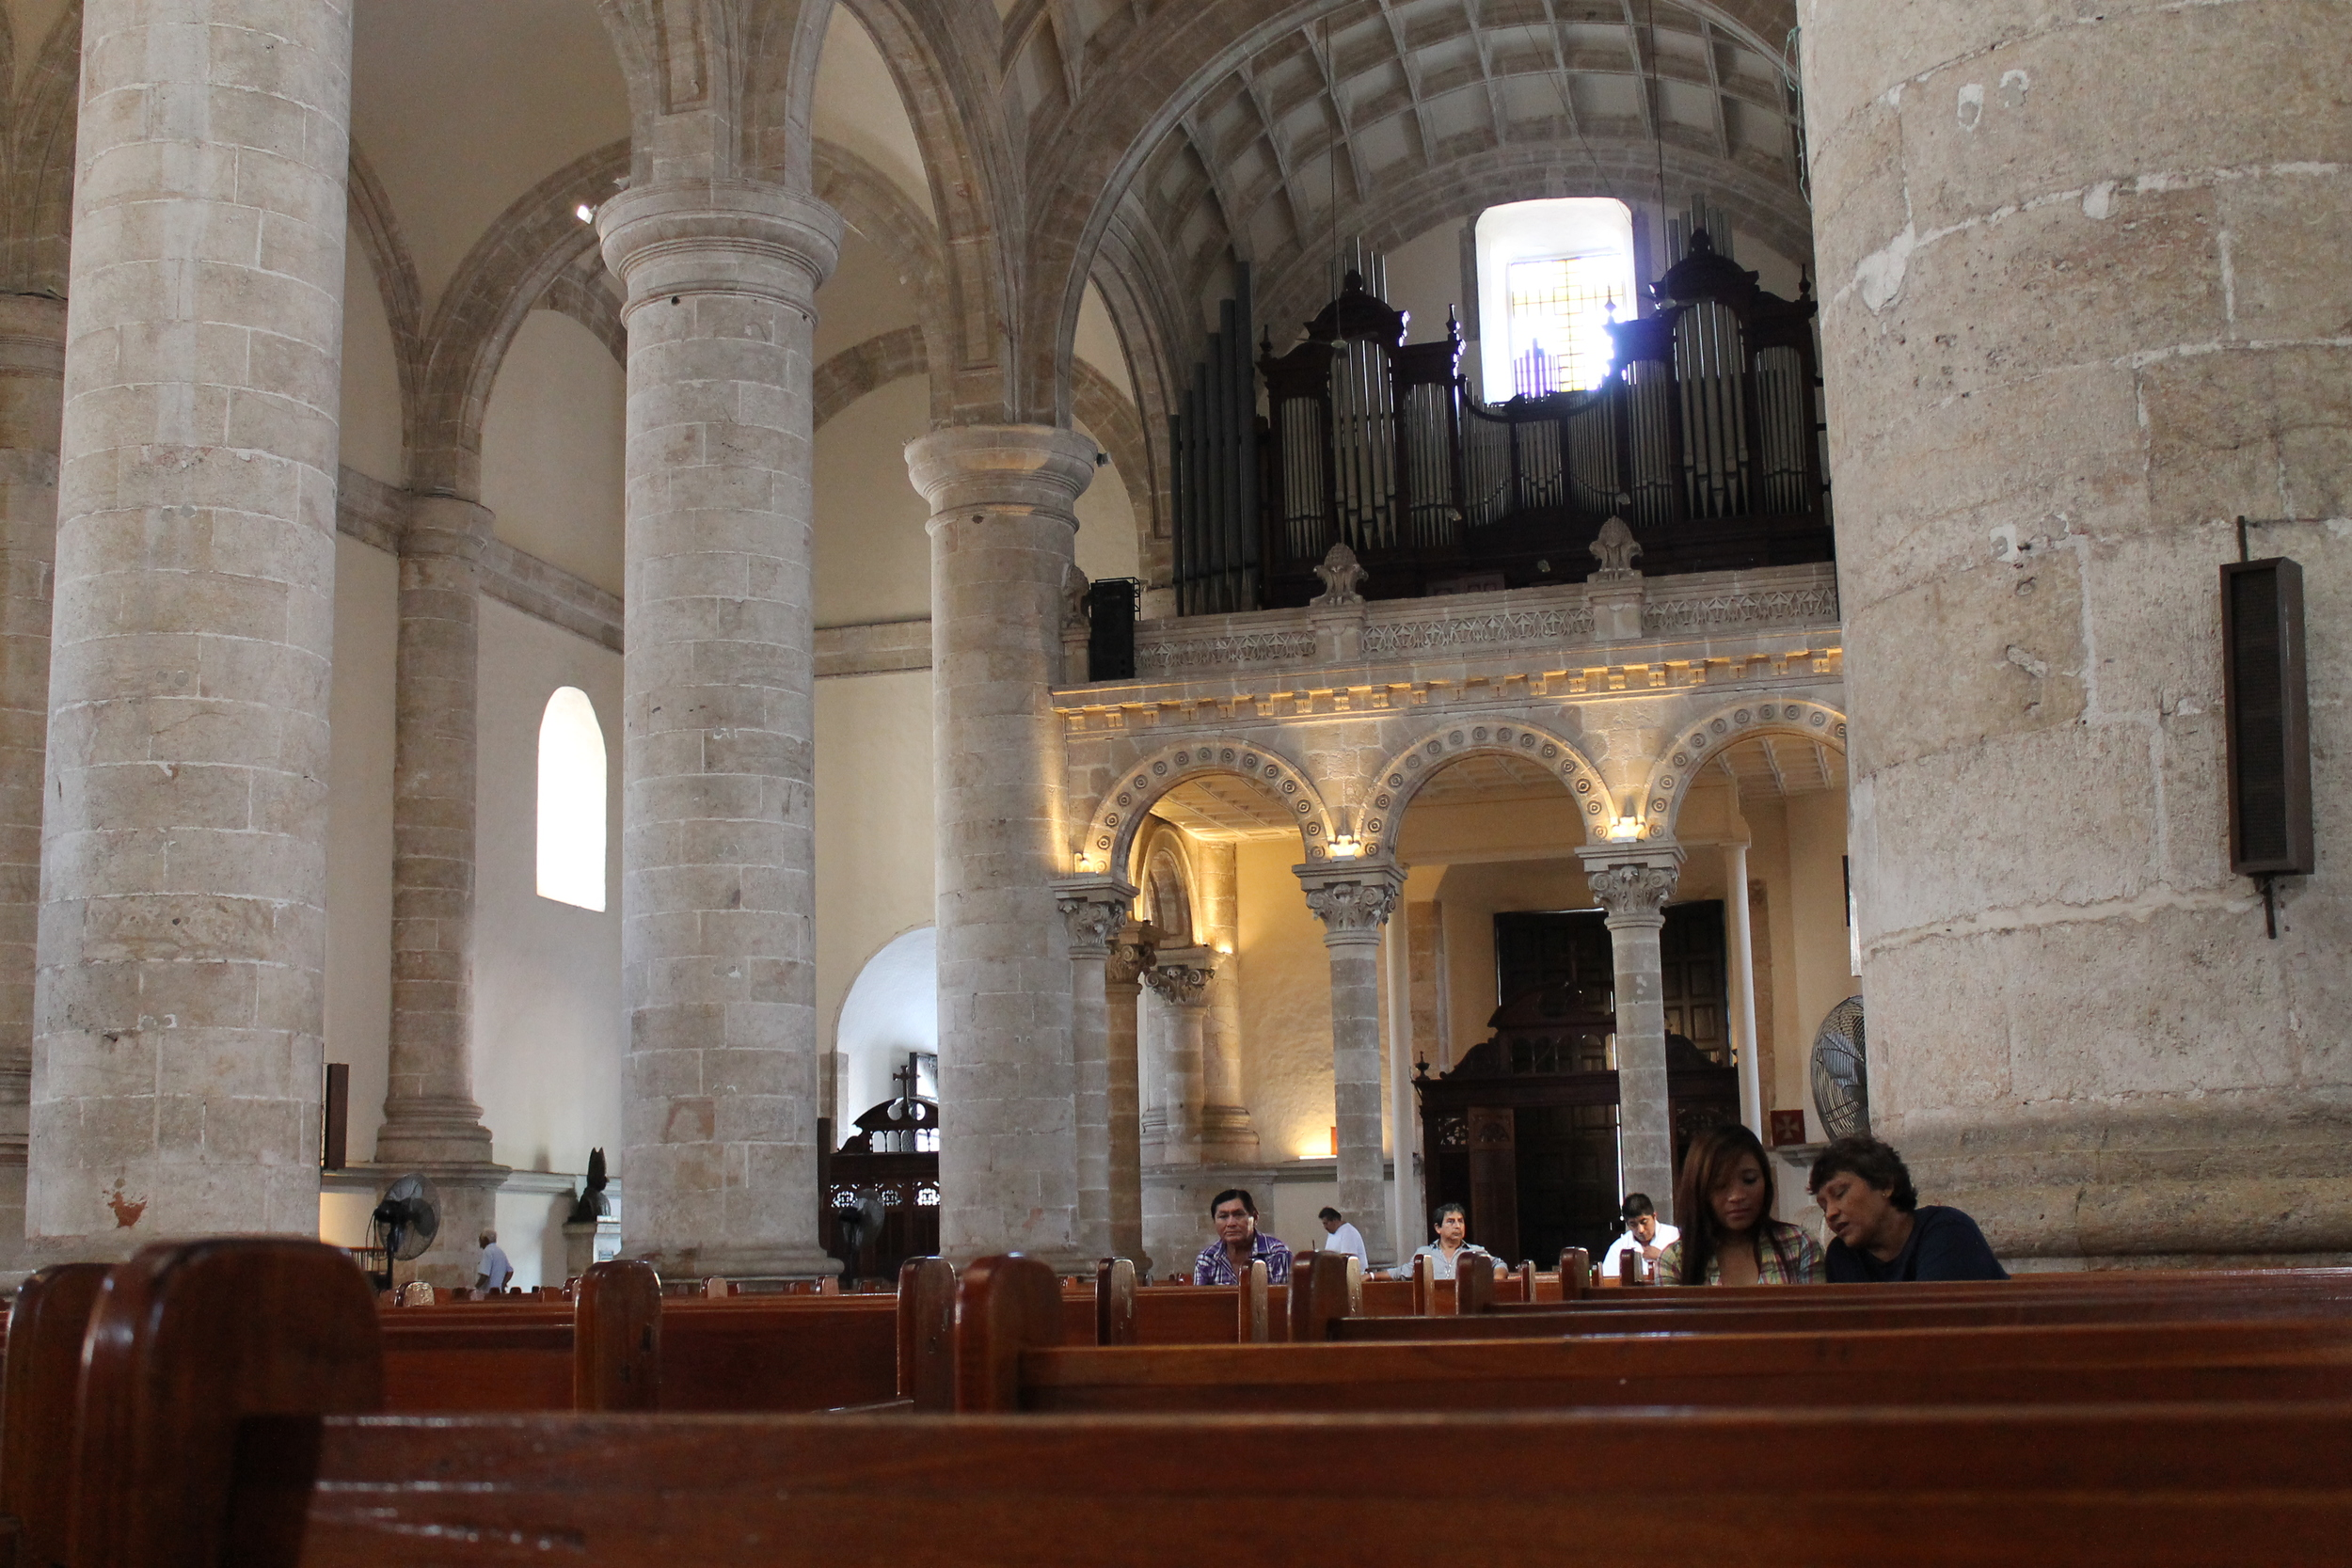 Inside the San Ildefonso Cathedral